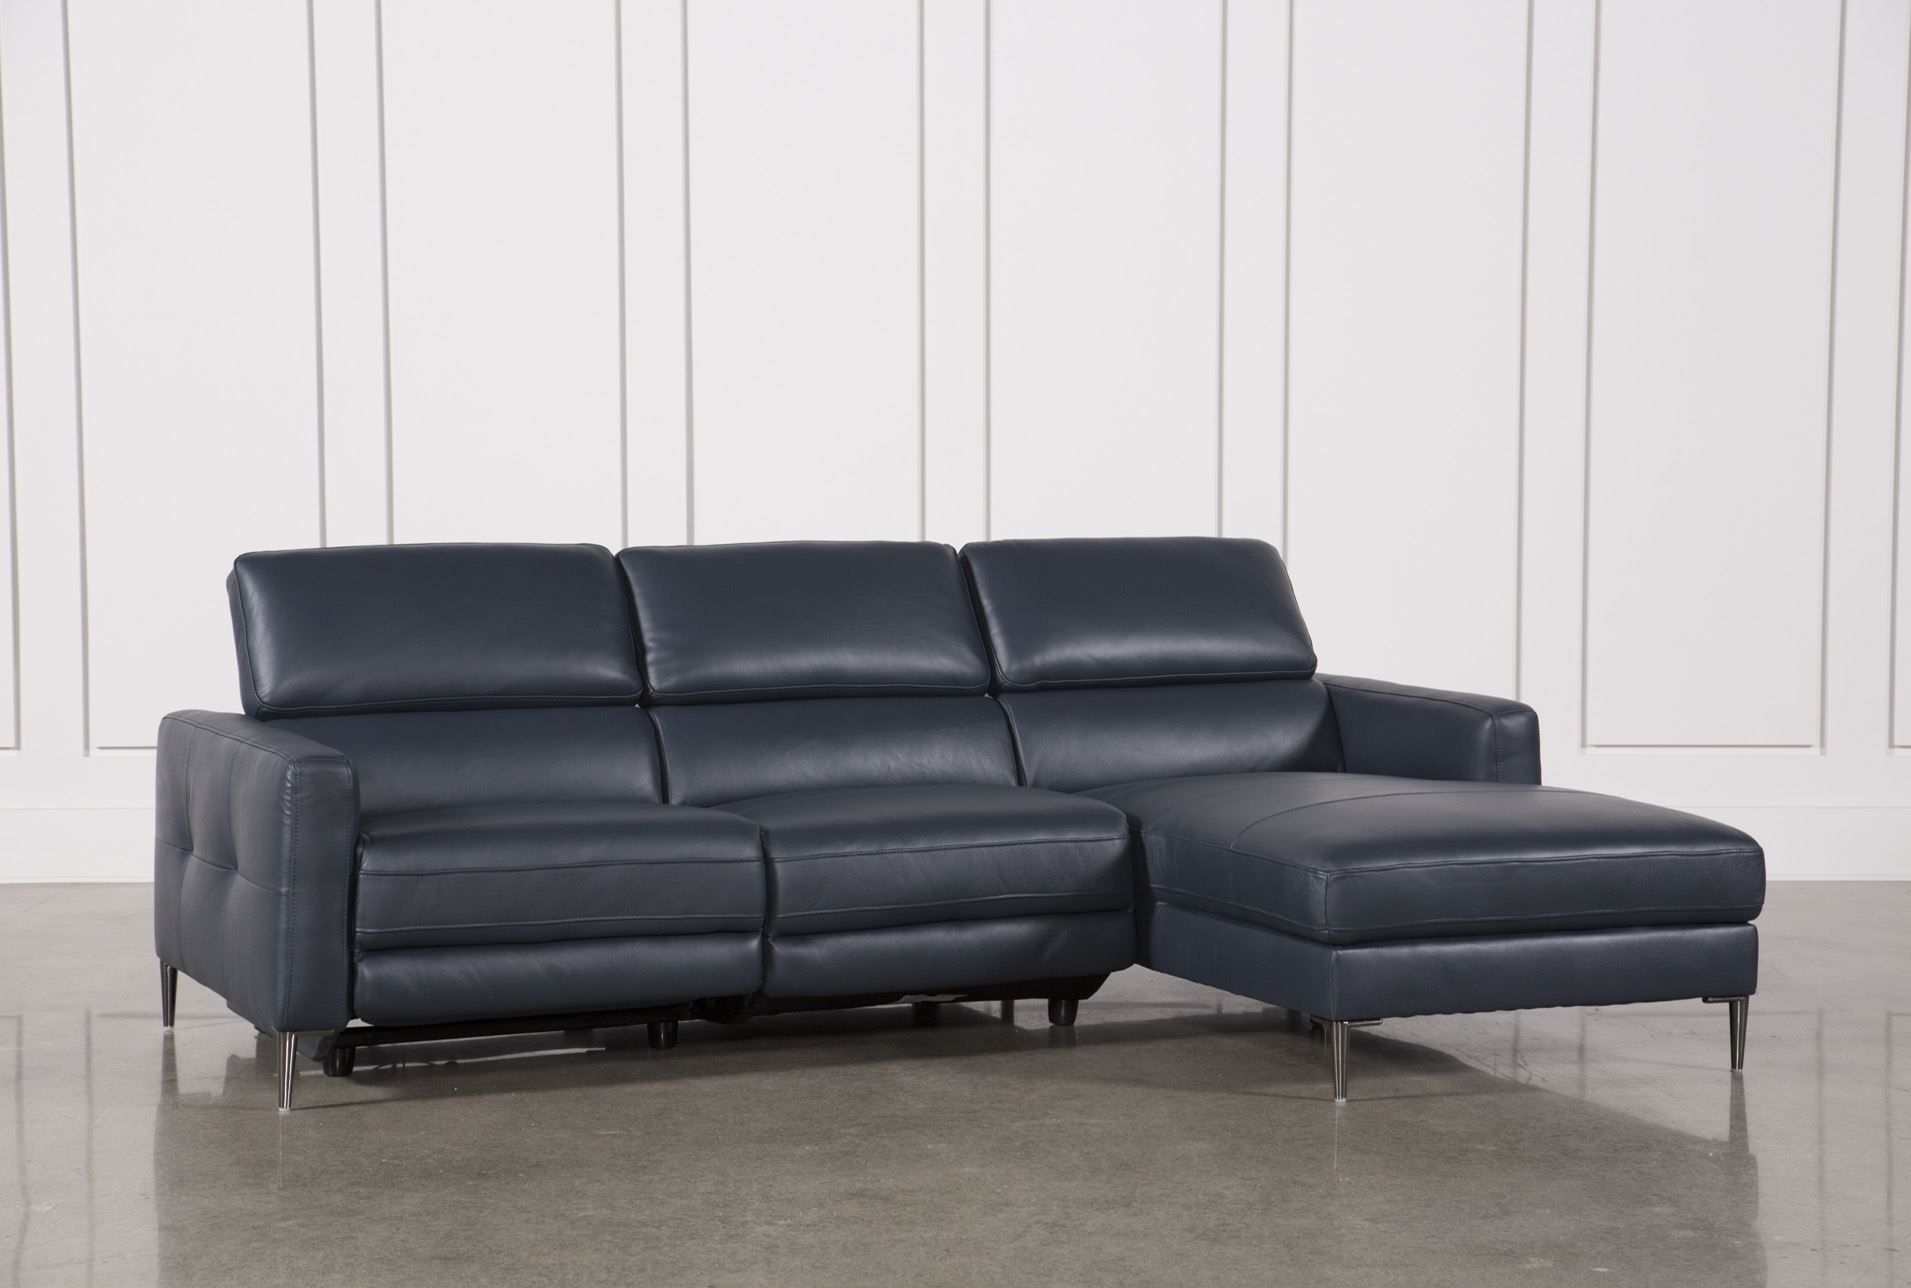 Tara Blue 2 Piece Right Facing Chaise Sofa | Chaise Sofa, Living intended for Tatum Dark Grey 2 Piece Sectionals With Raf Chaise (Image 21 of 30)